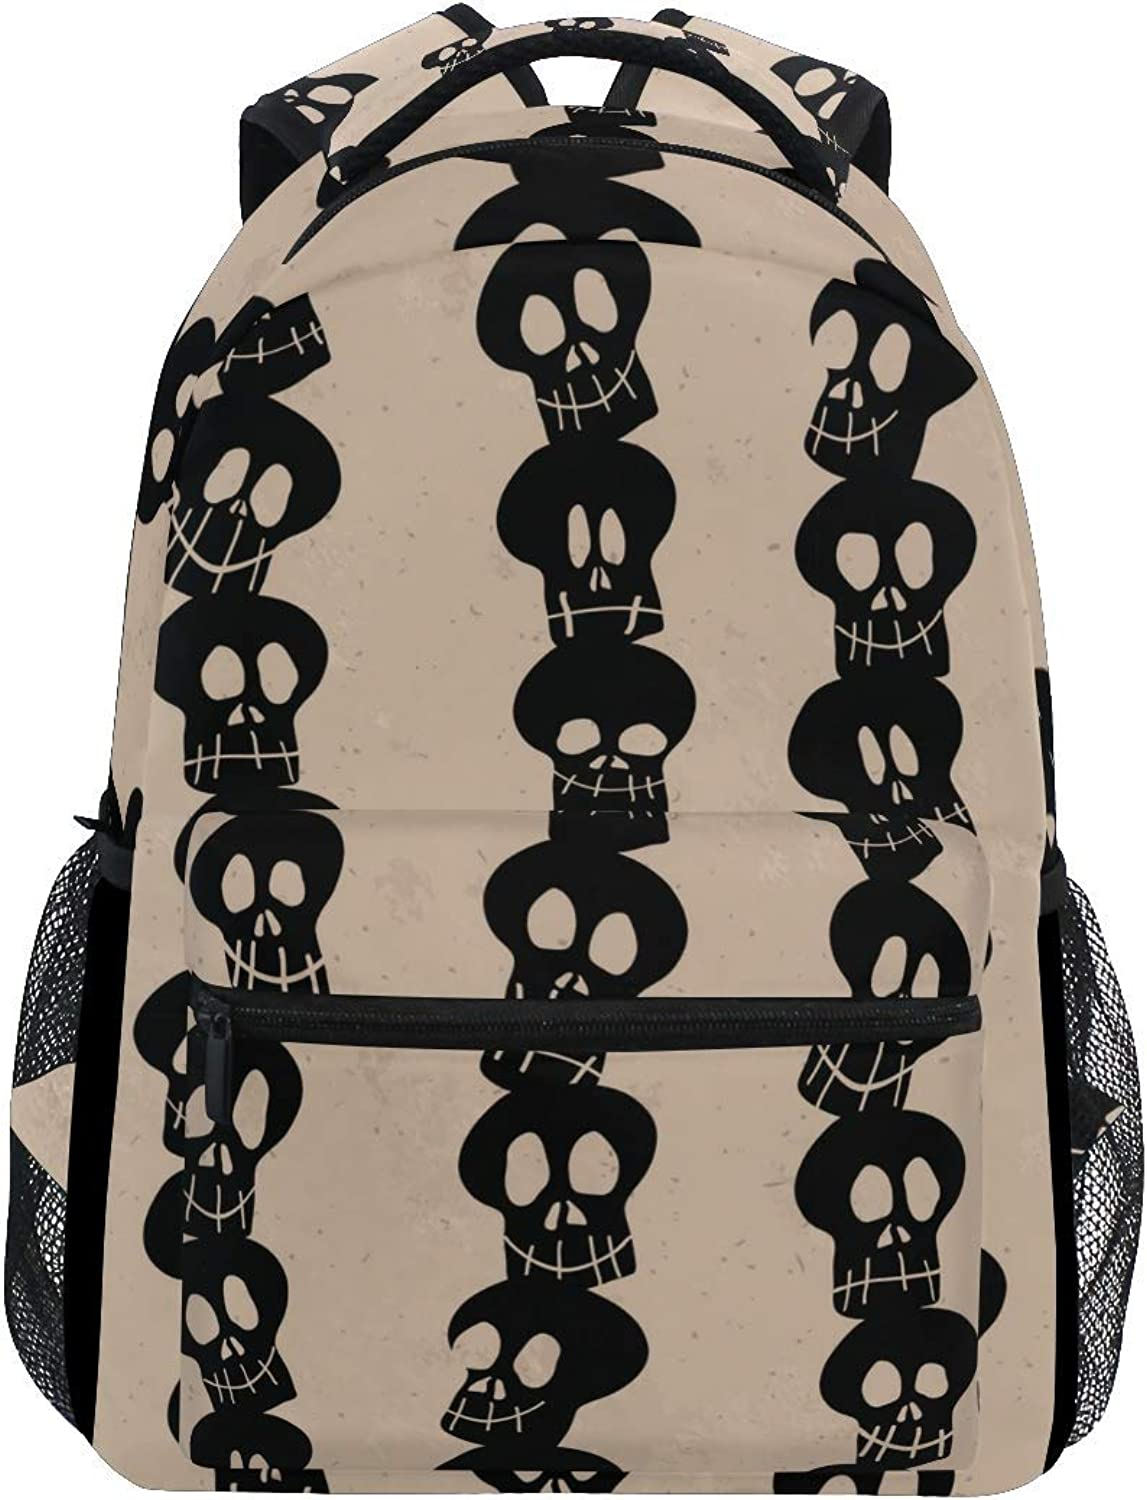 Cartoon Backpack Backpack School School School Bag Laptop Travel Bags for Kids Boys Girls Women Men Vintage Skulls Halloween Autumn Fall Thanksgiving Day fa7d5a